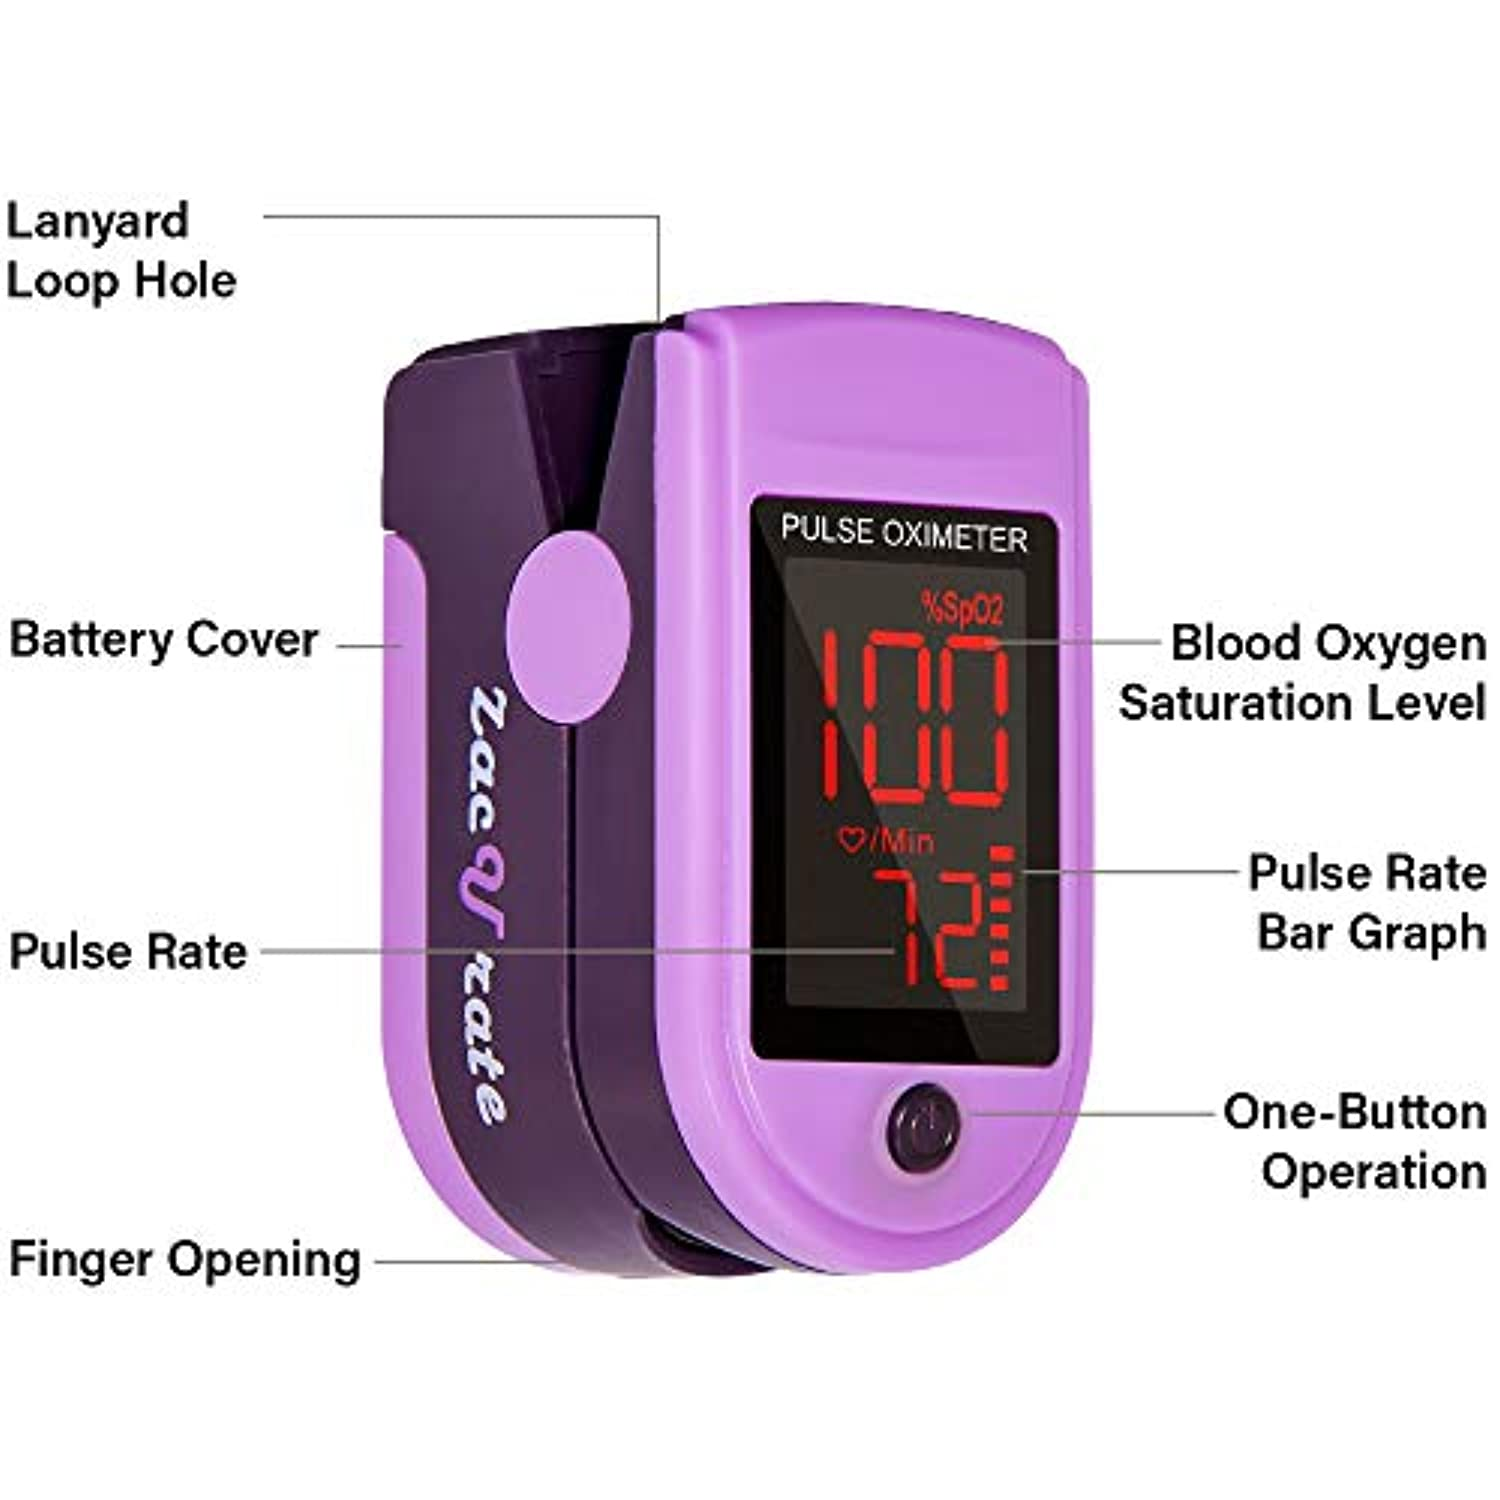 Classier: Buy Zacurate Zacurate Pro Series 500DL Fingertip Pulse Oximeter Blood Oxygen Saturation Monitor with Silicon Cover, Batteries and Lanyard (Mystic Purple)